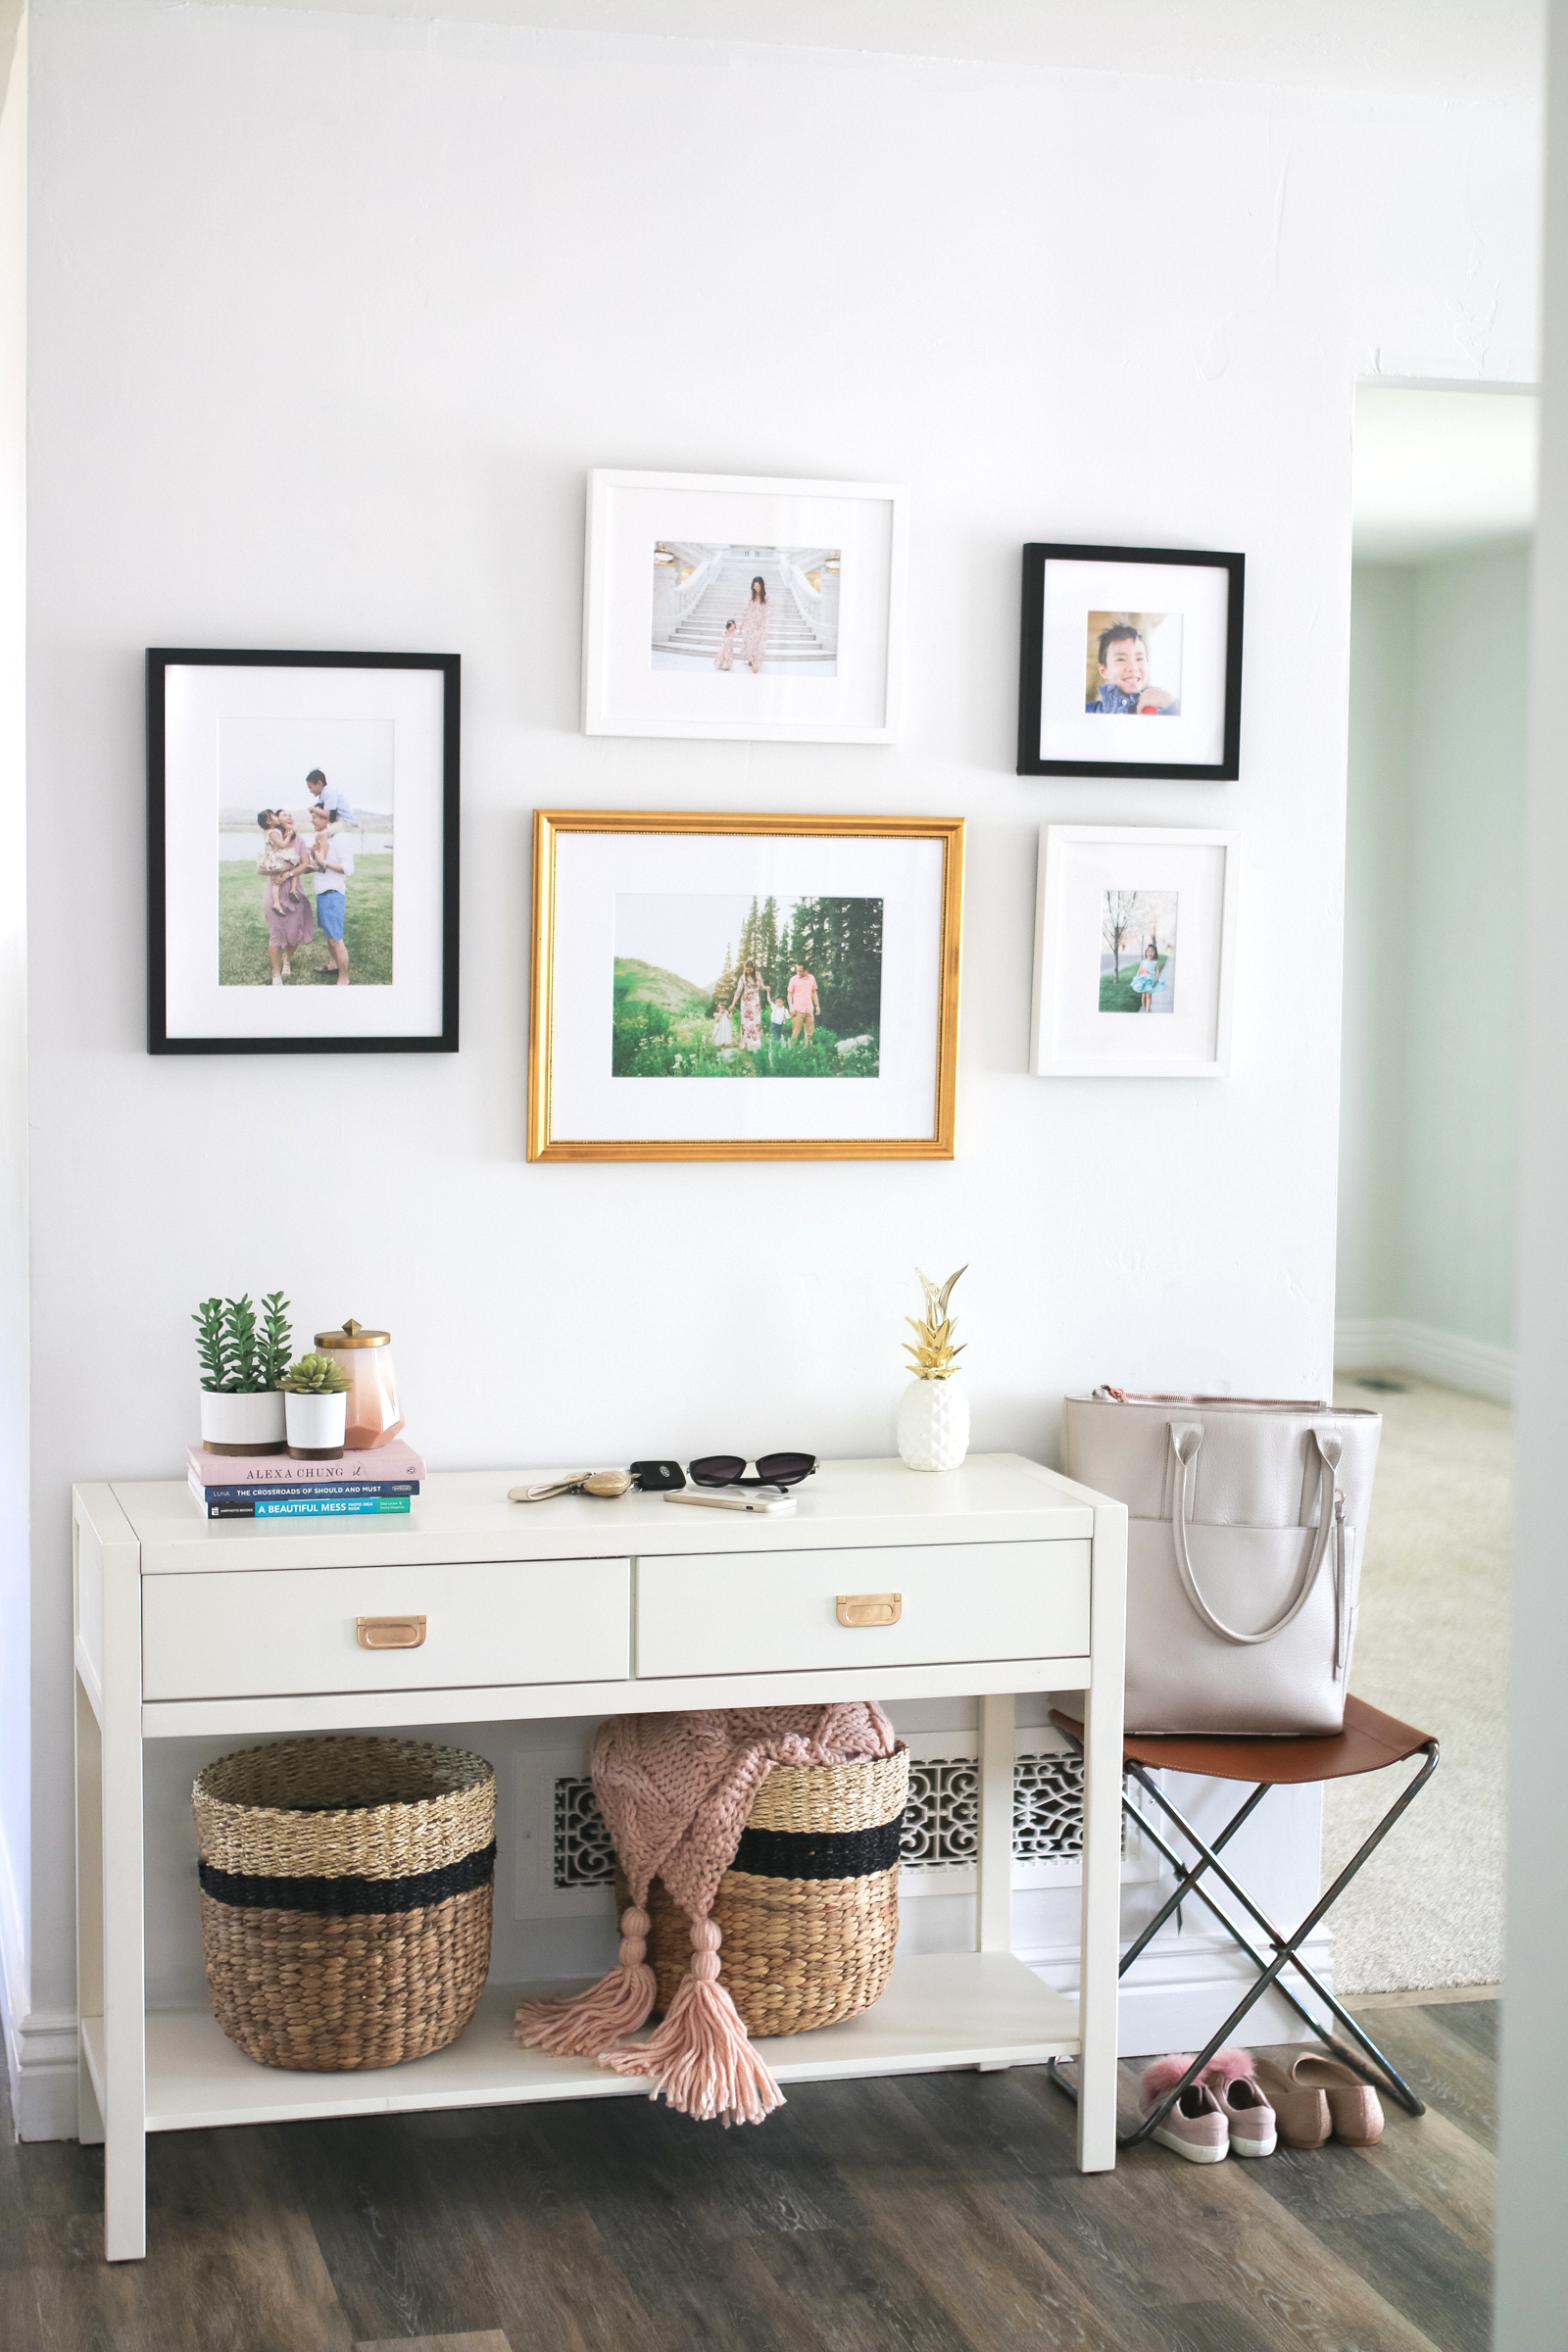 Our New Home Big Reveal: Stylish Entryway Decor Ideas by popular blogger Sandy A La Mode